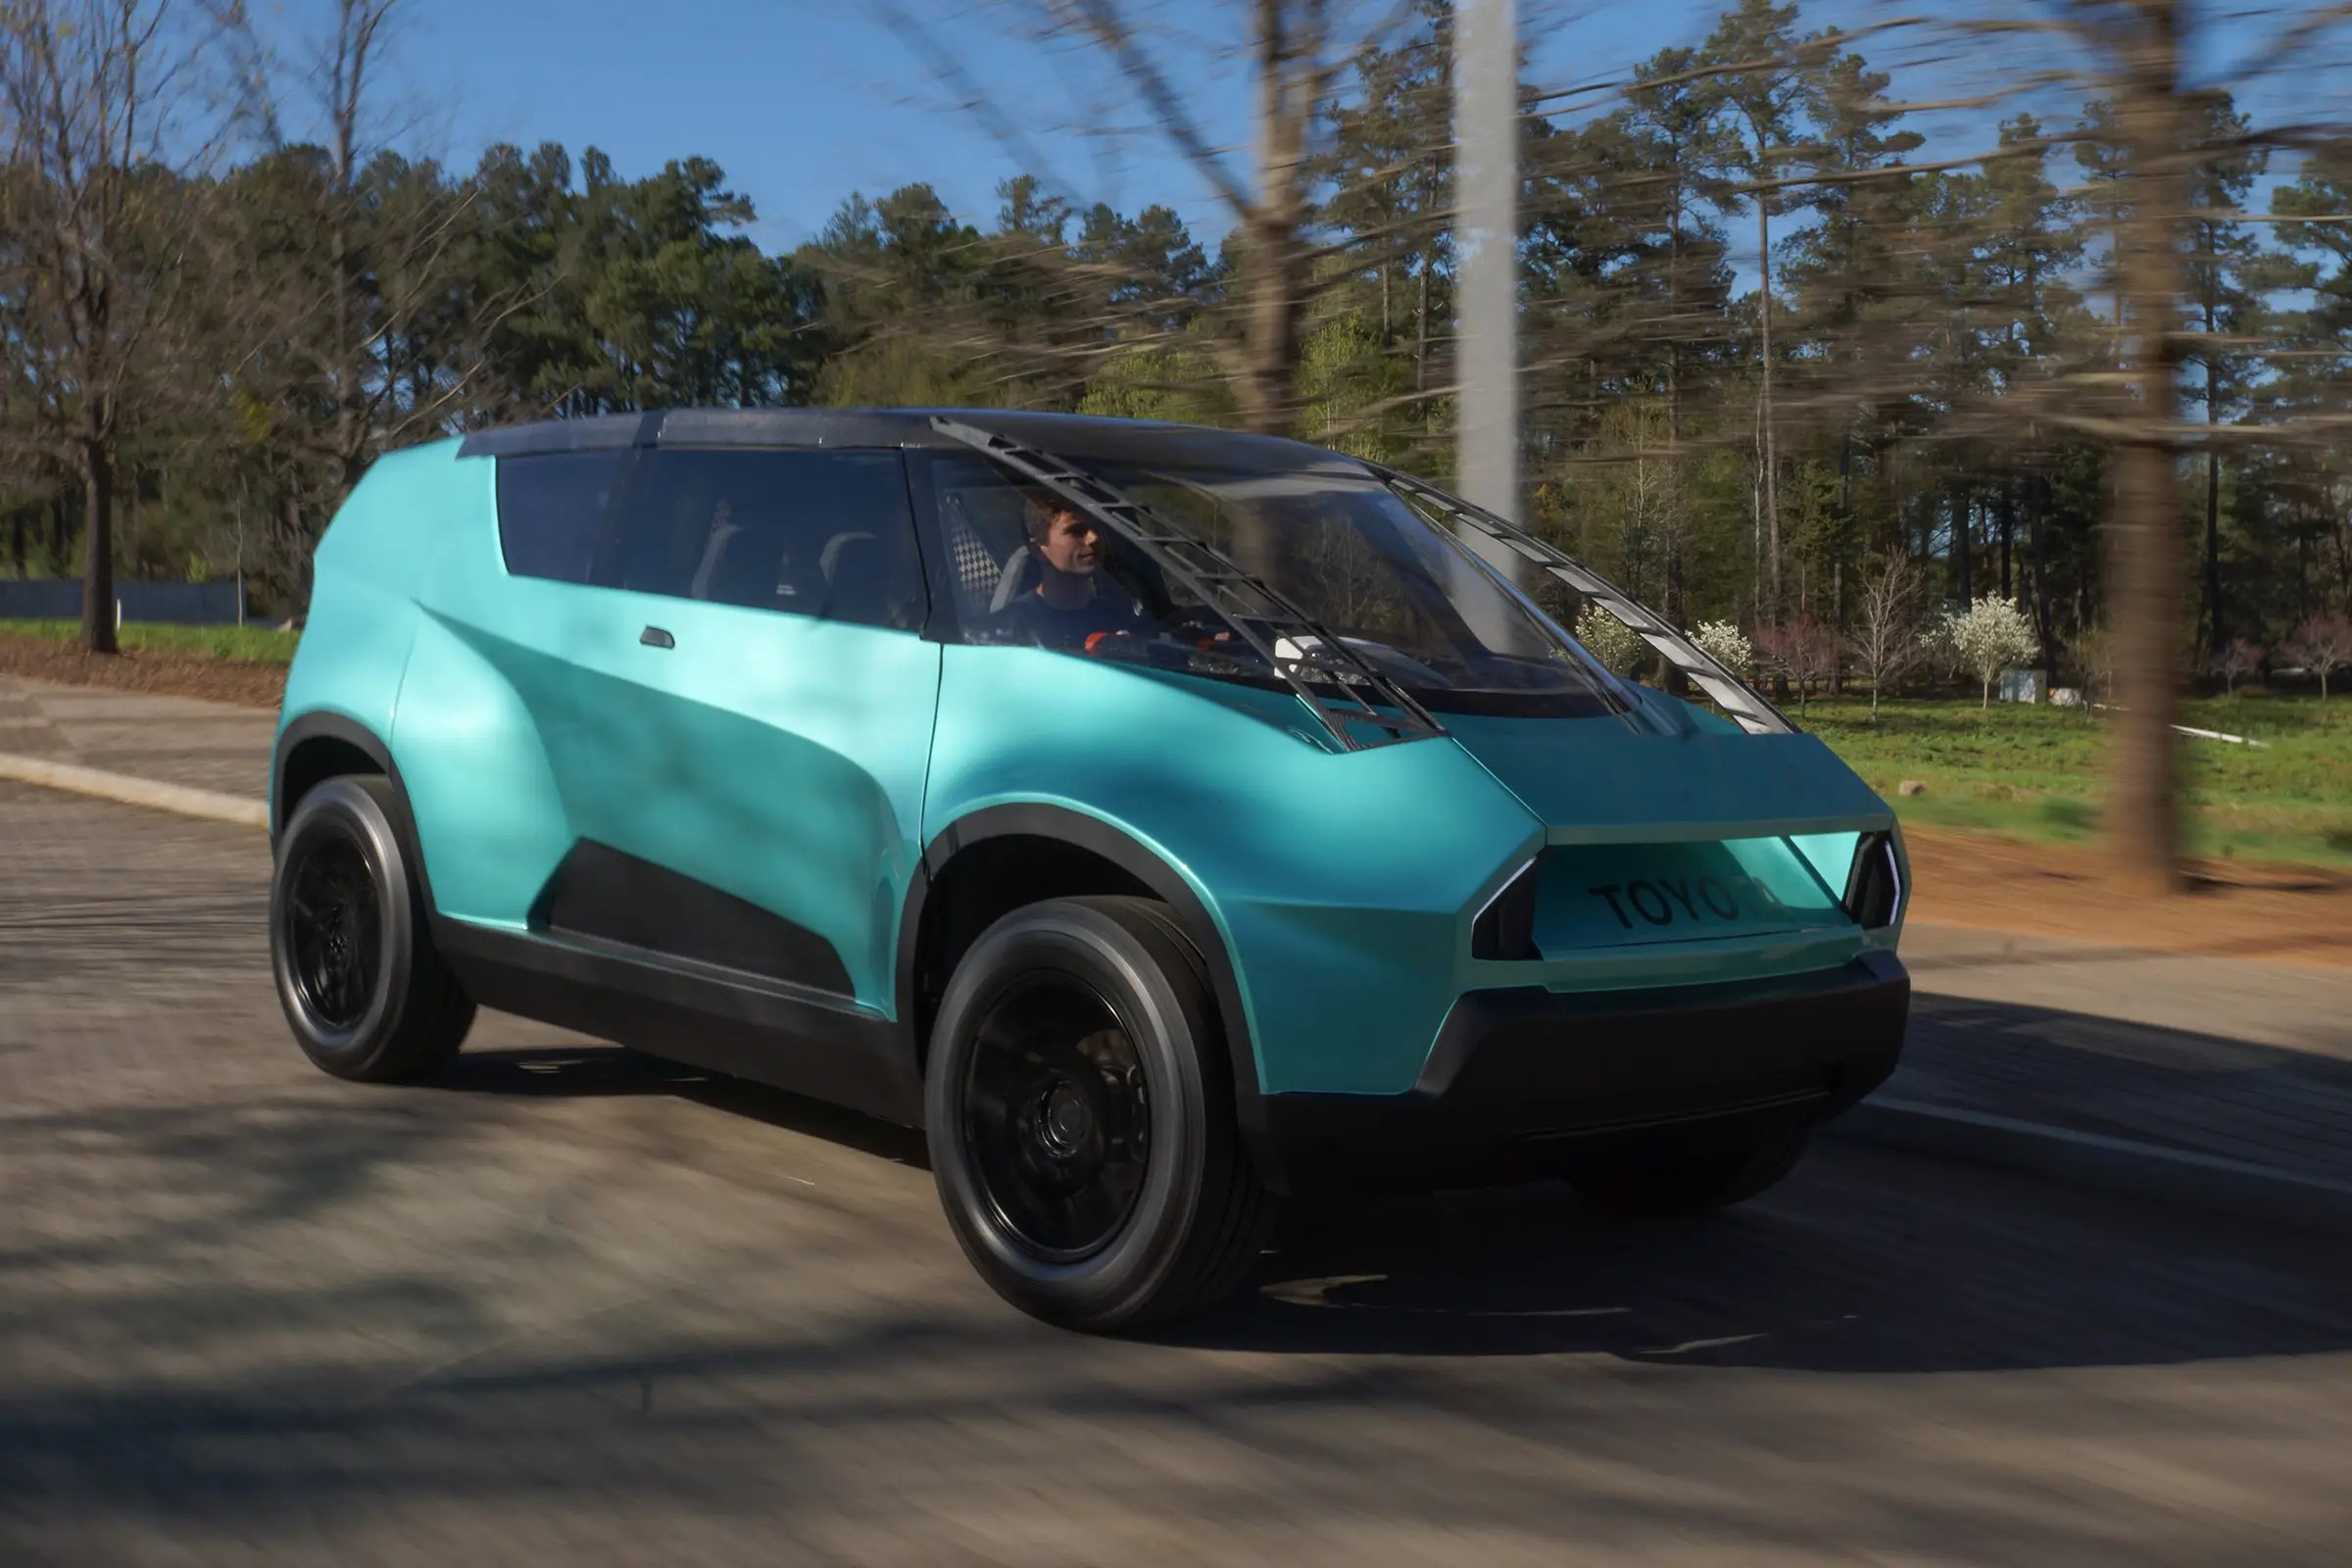 13. Toyota unveiled a strange-looking concept car dubbed the uBox to appeal to Generation Z in April.